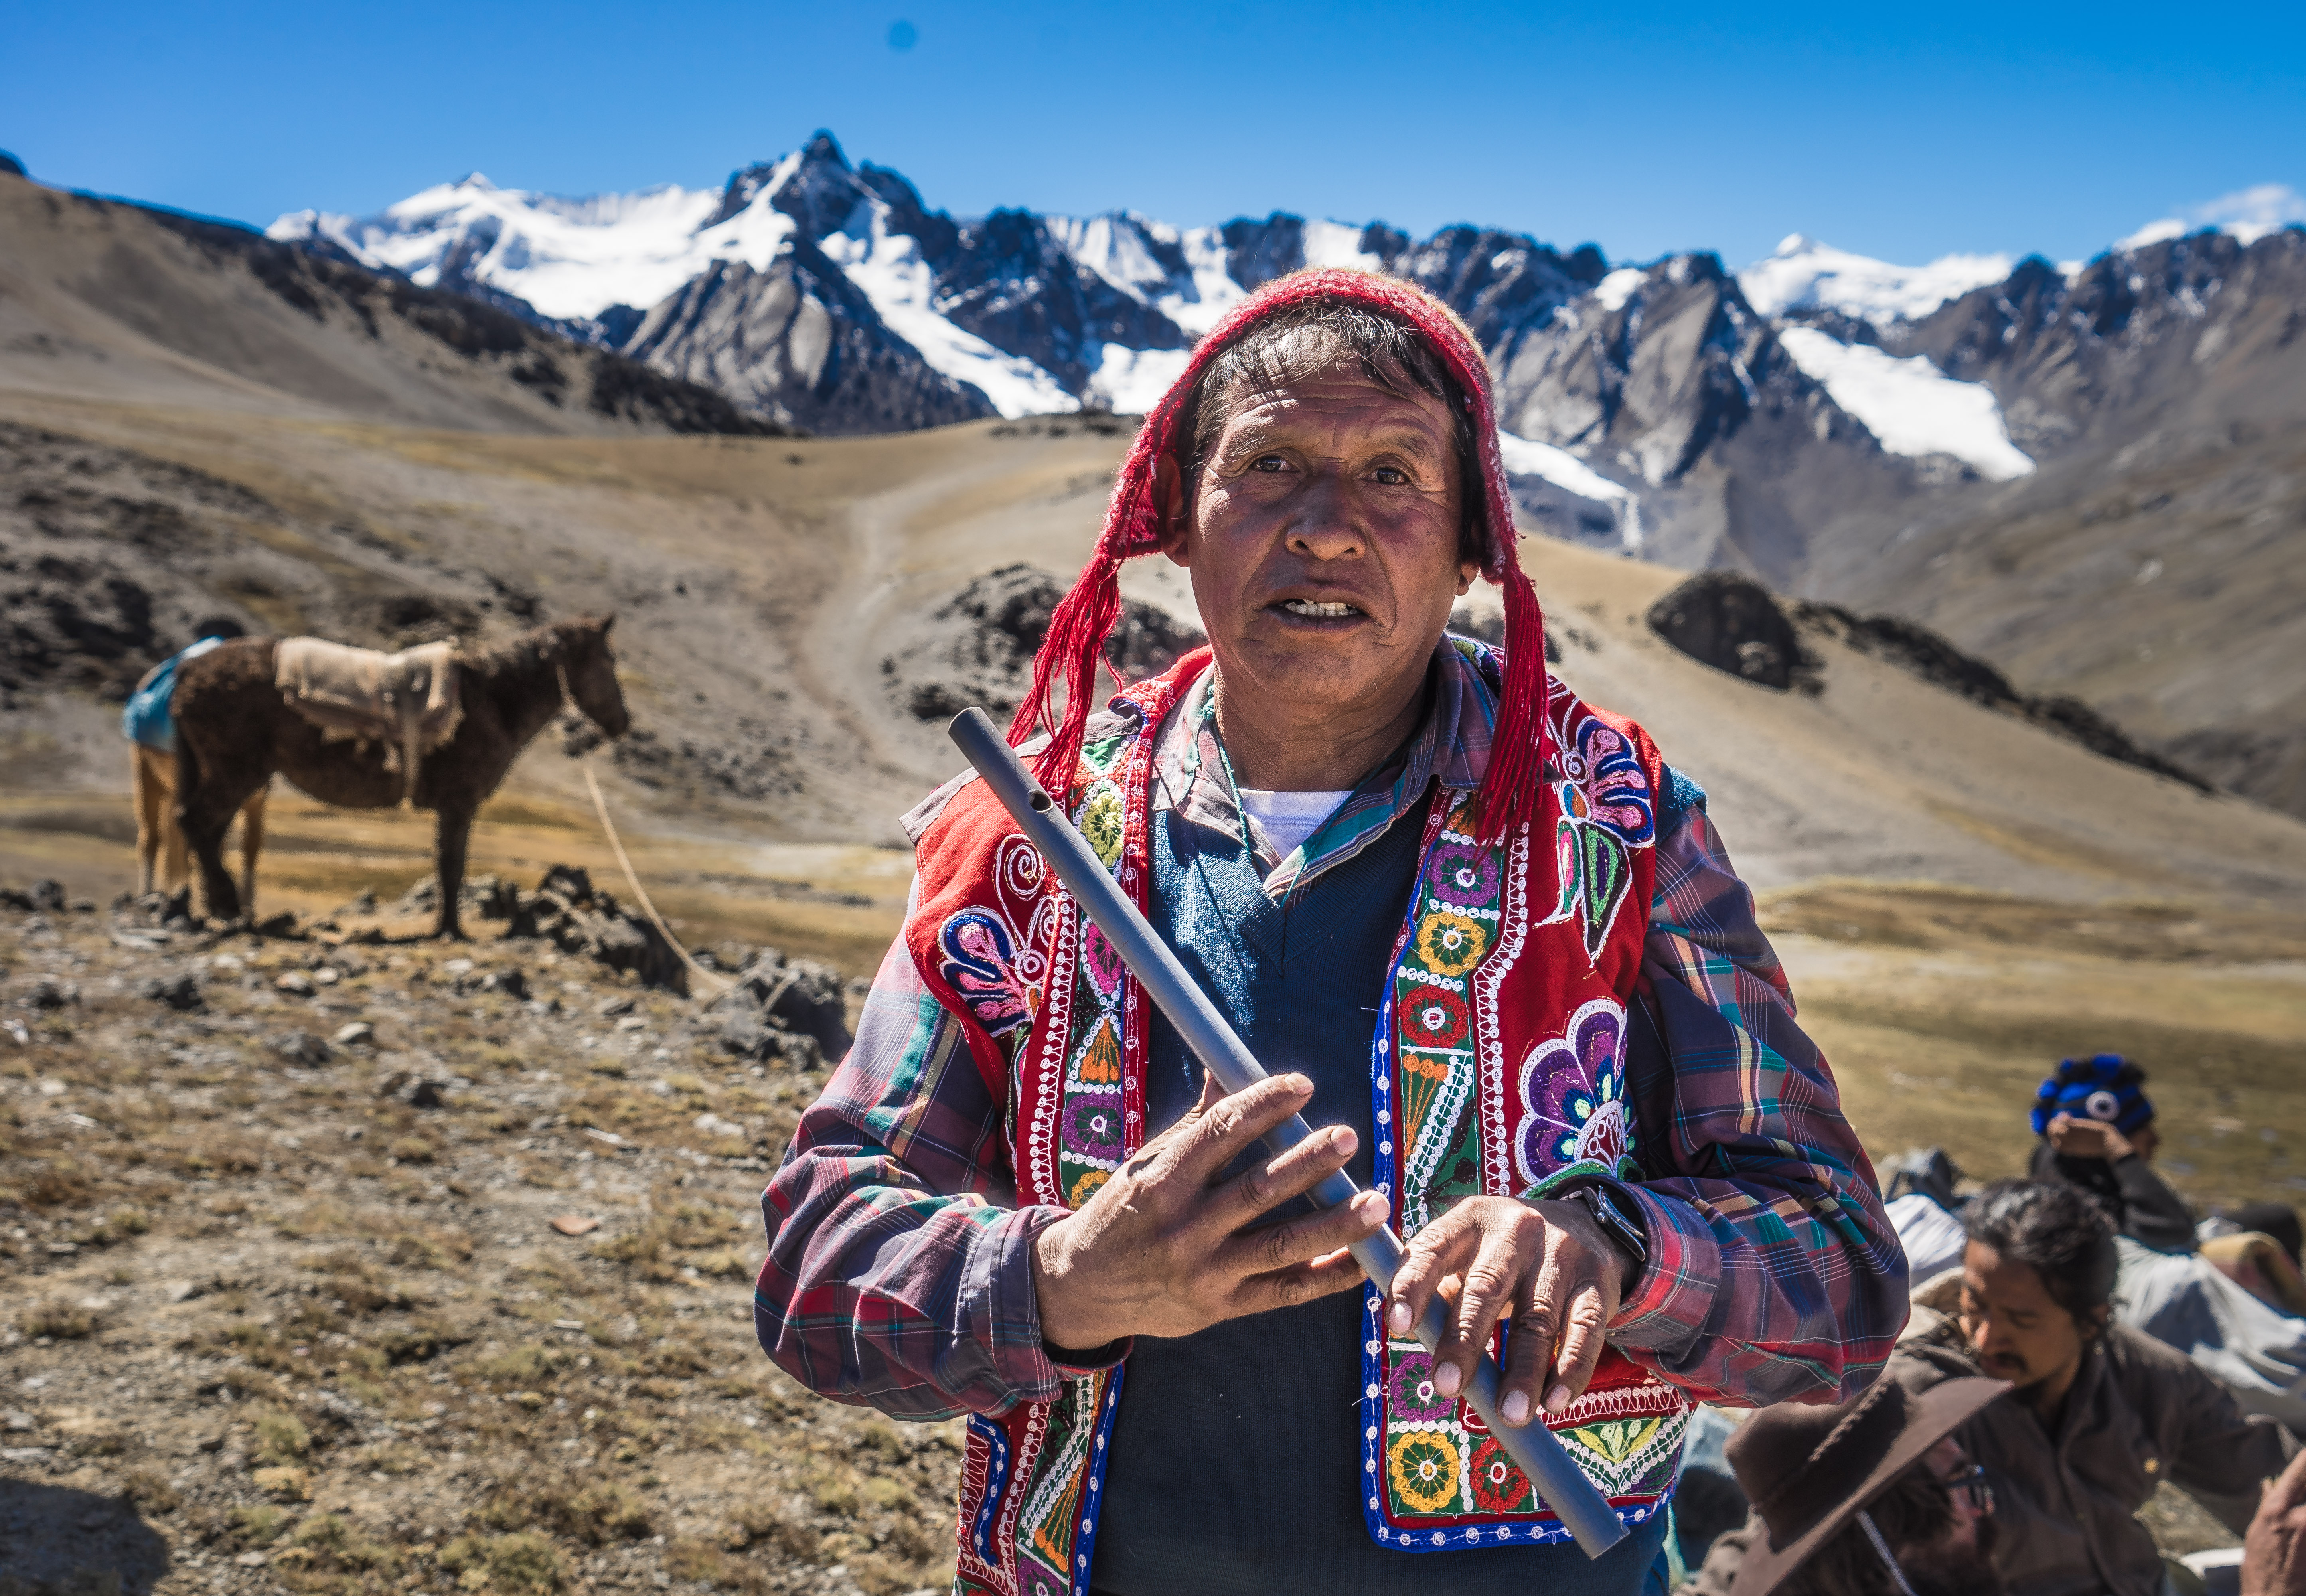 Miguel From Pisac Town (Photo by Walter Coraza Morveli)